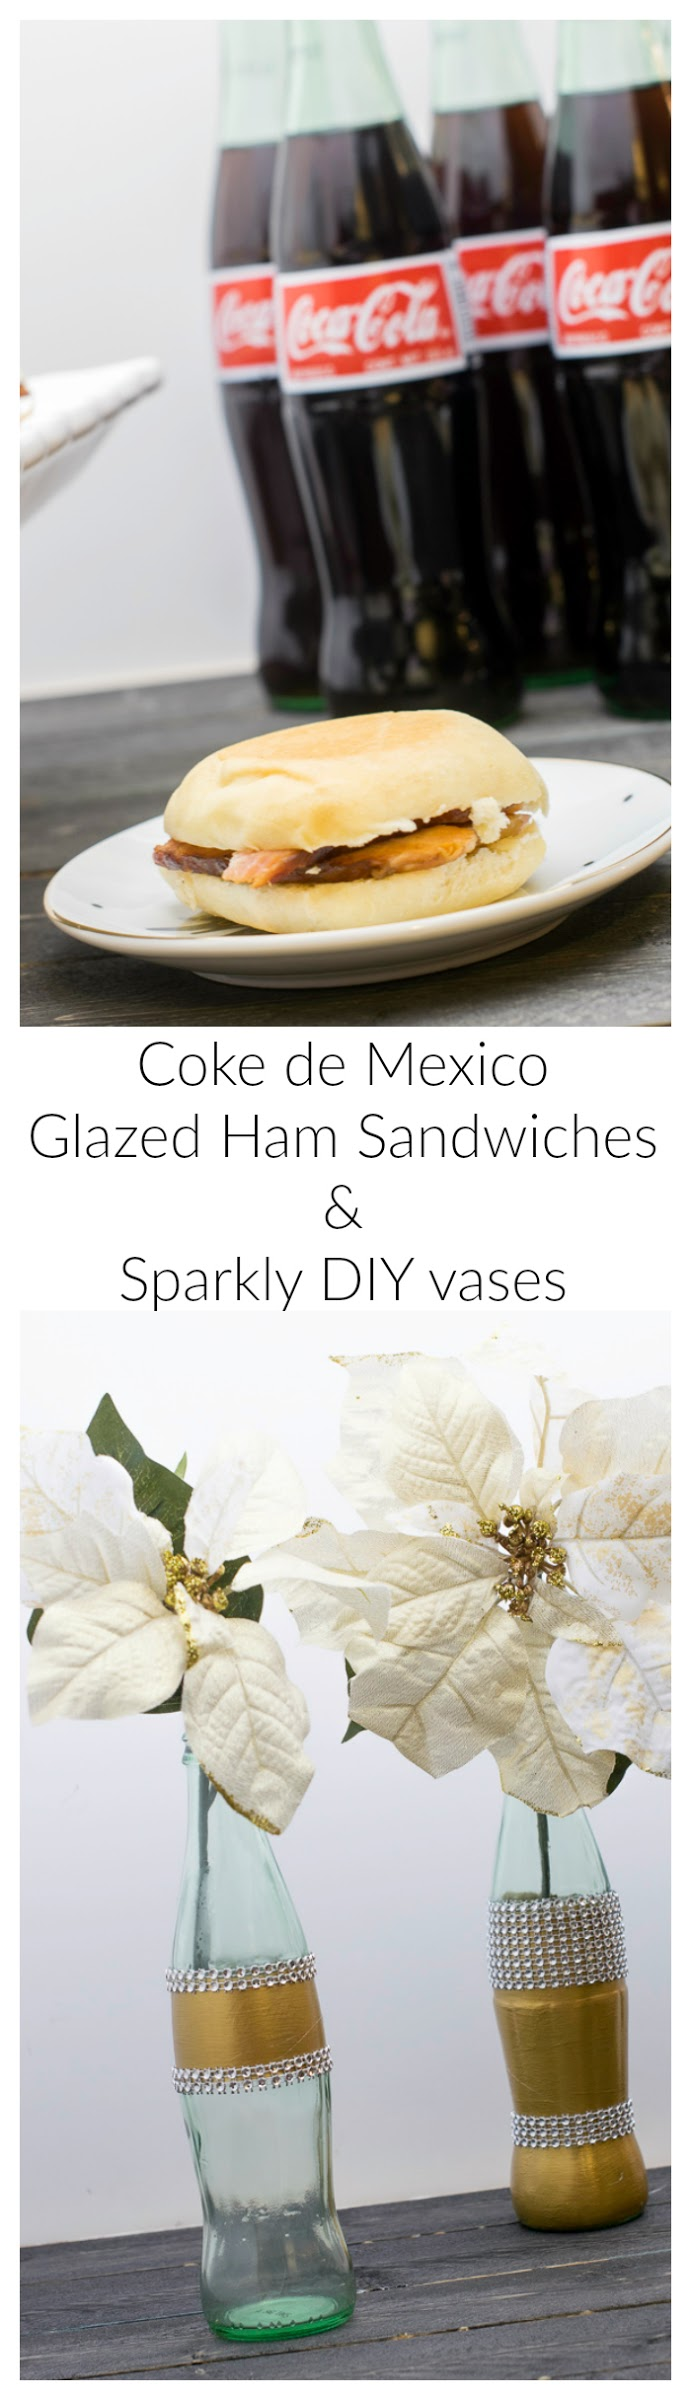 Coke De Mexico glazed ham sandwiches and sparkly diy vases. Coke de Mexico Glazed ham sandwiches for holiday entertaining. Learn how to decorate the glass bottles with gold paint and rhinestones for a stunning display. #ShareHolidayJoy #CollectiveBias